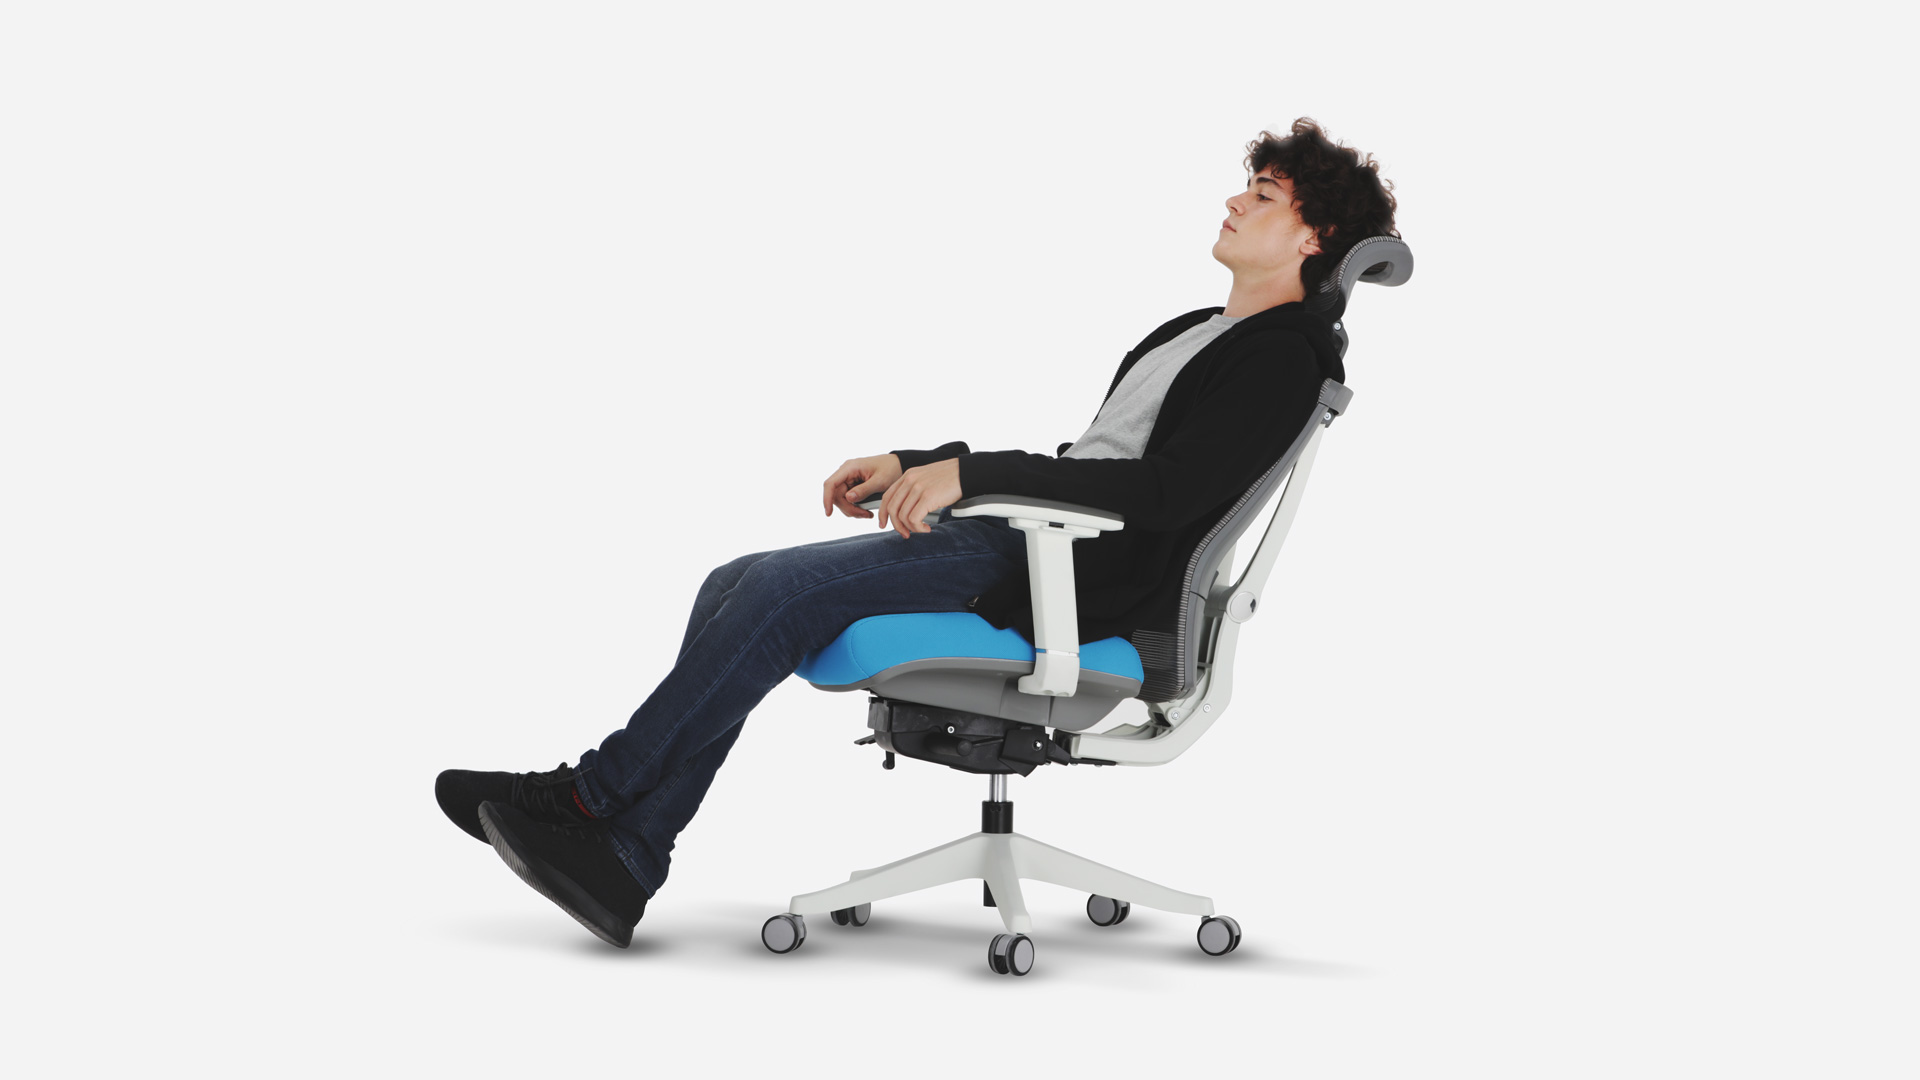 I Had Chosen The Black And Black Option, And I Think It Works Well In An  Office Environment. If I Were To Get Another One For My Home Office, ...